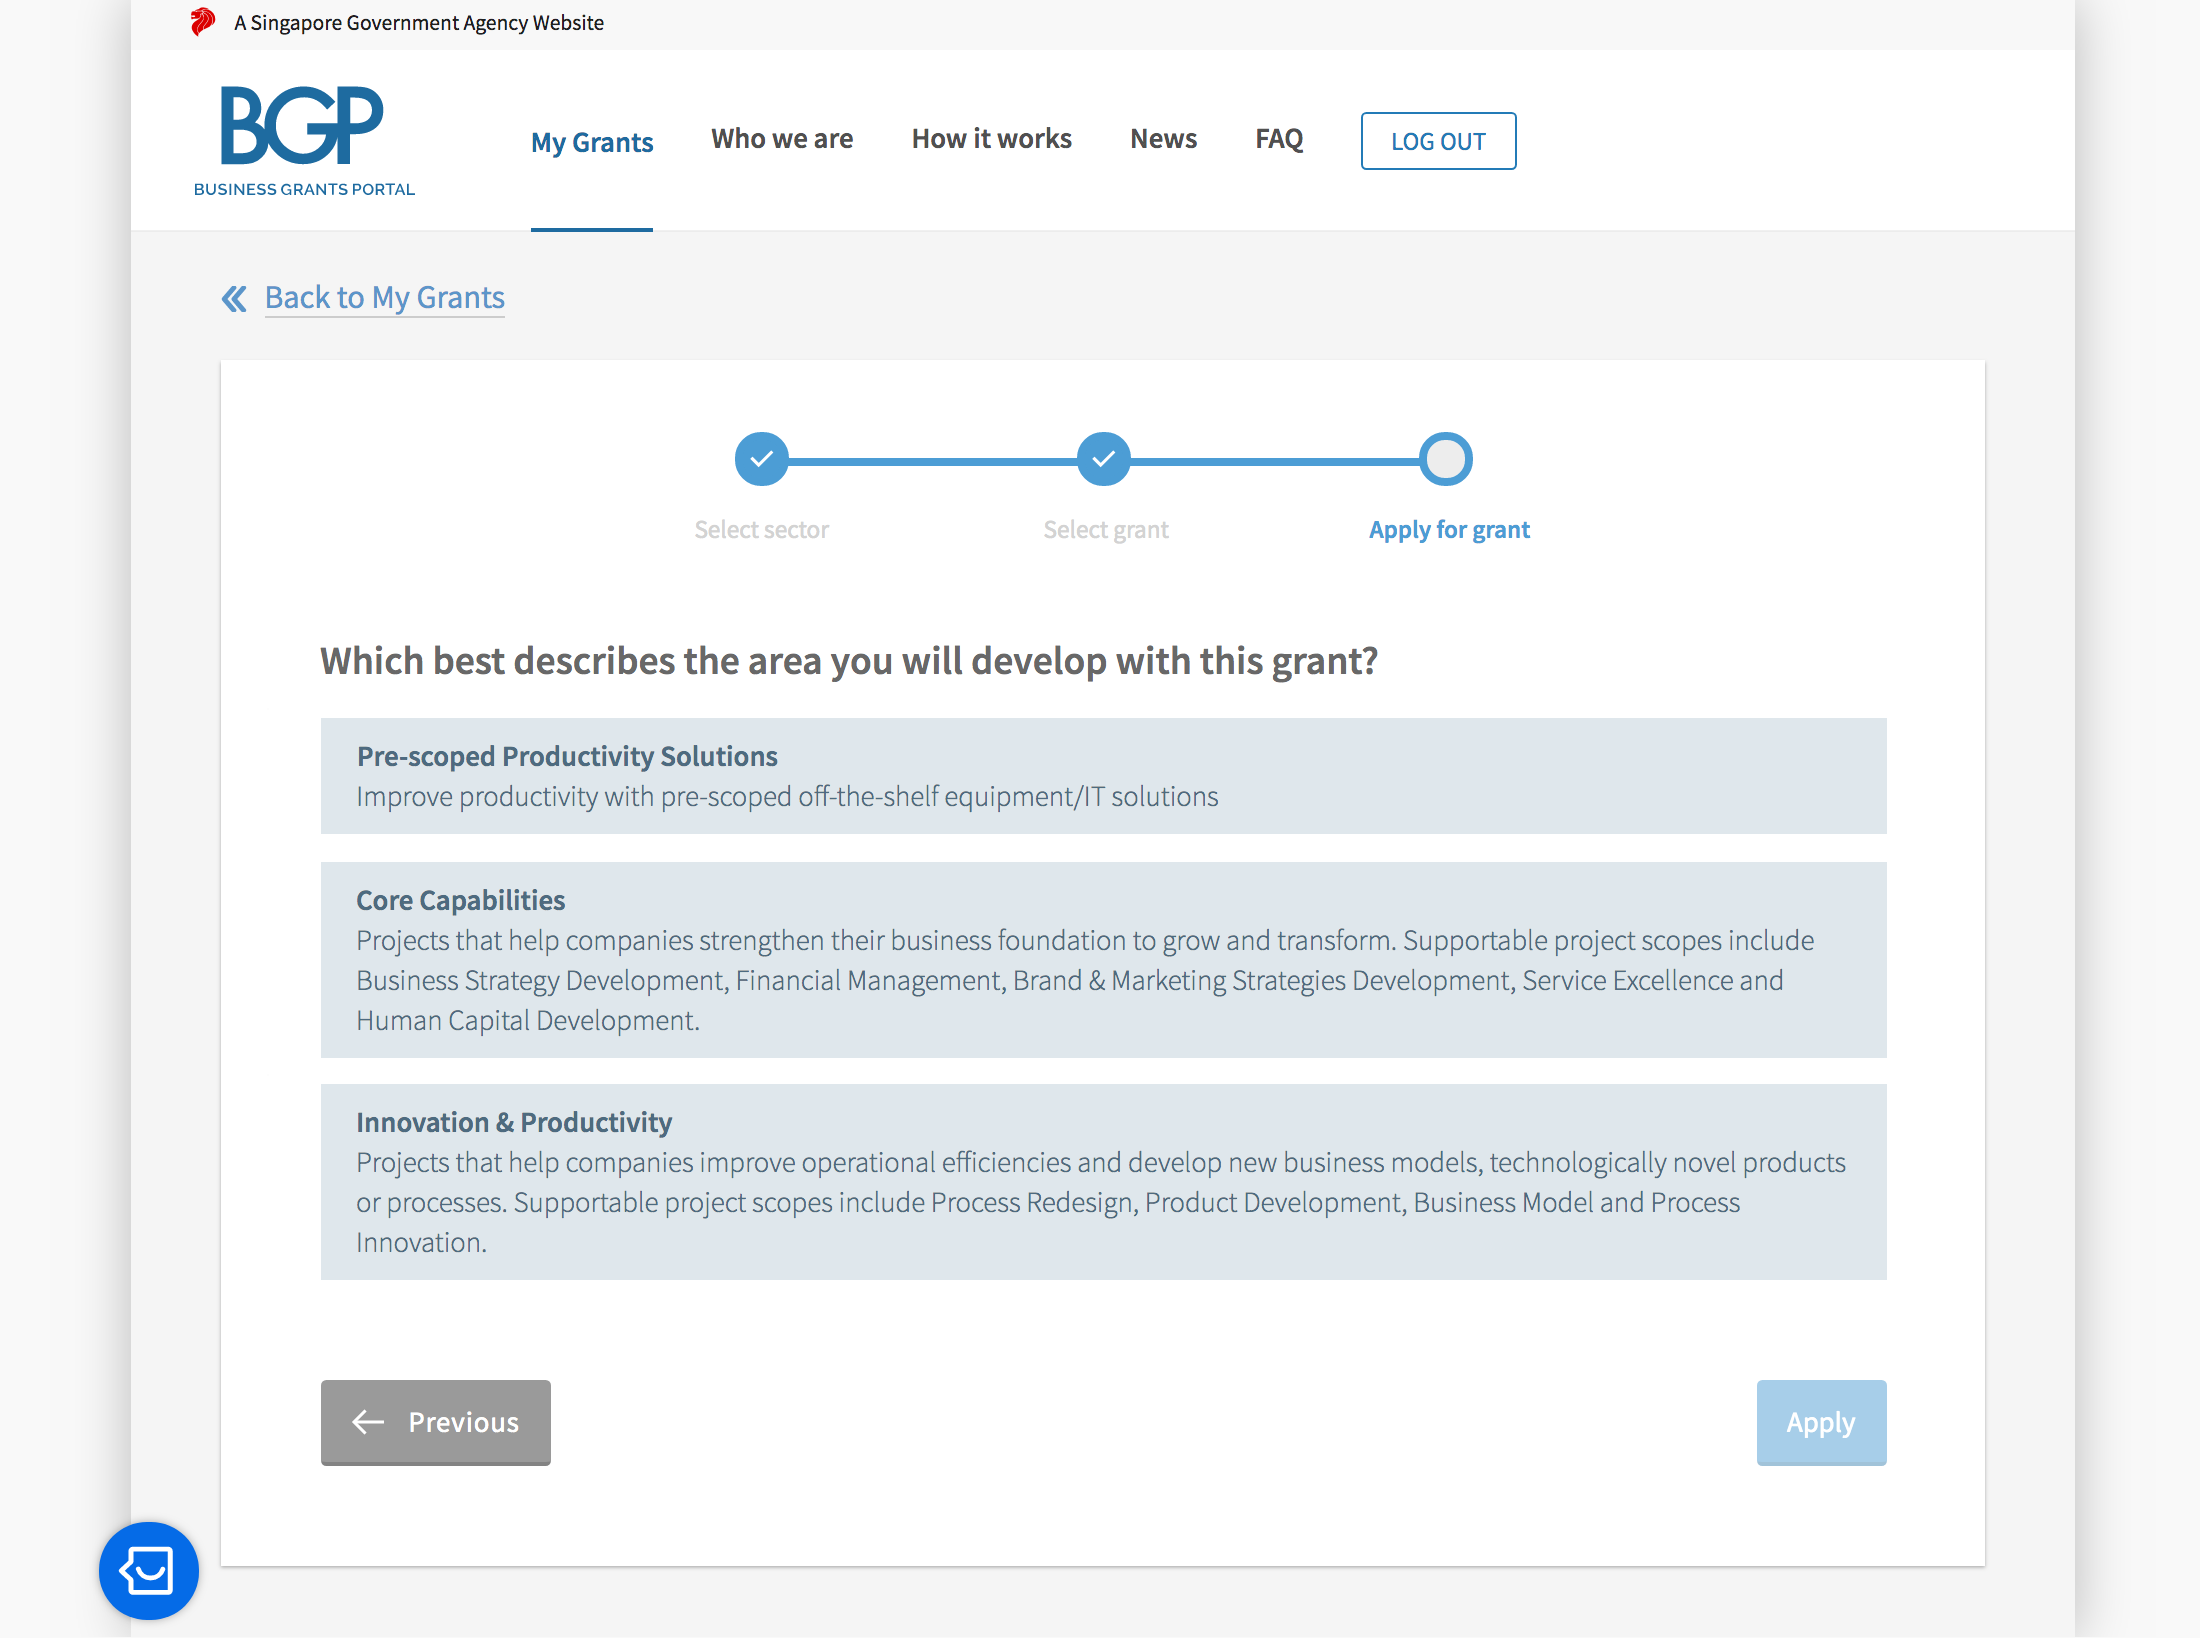 businessgrants-portal-edg-walkthrough5-2019